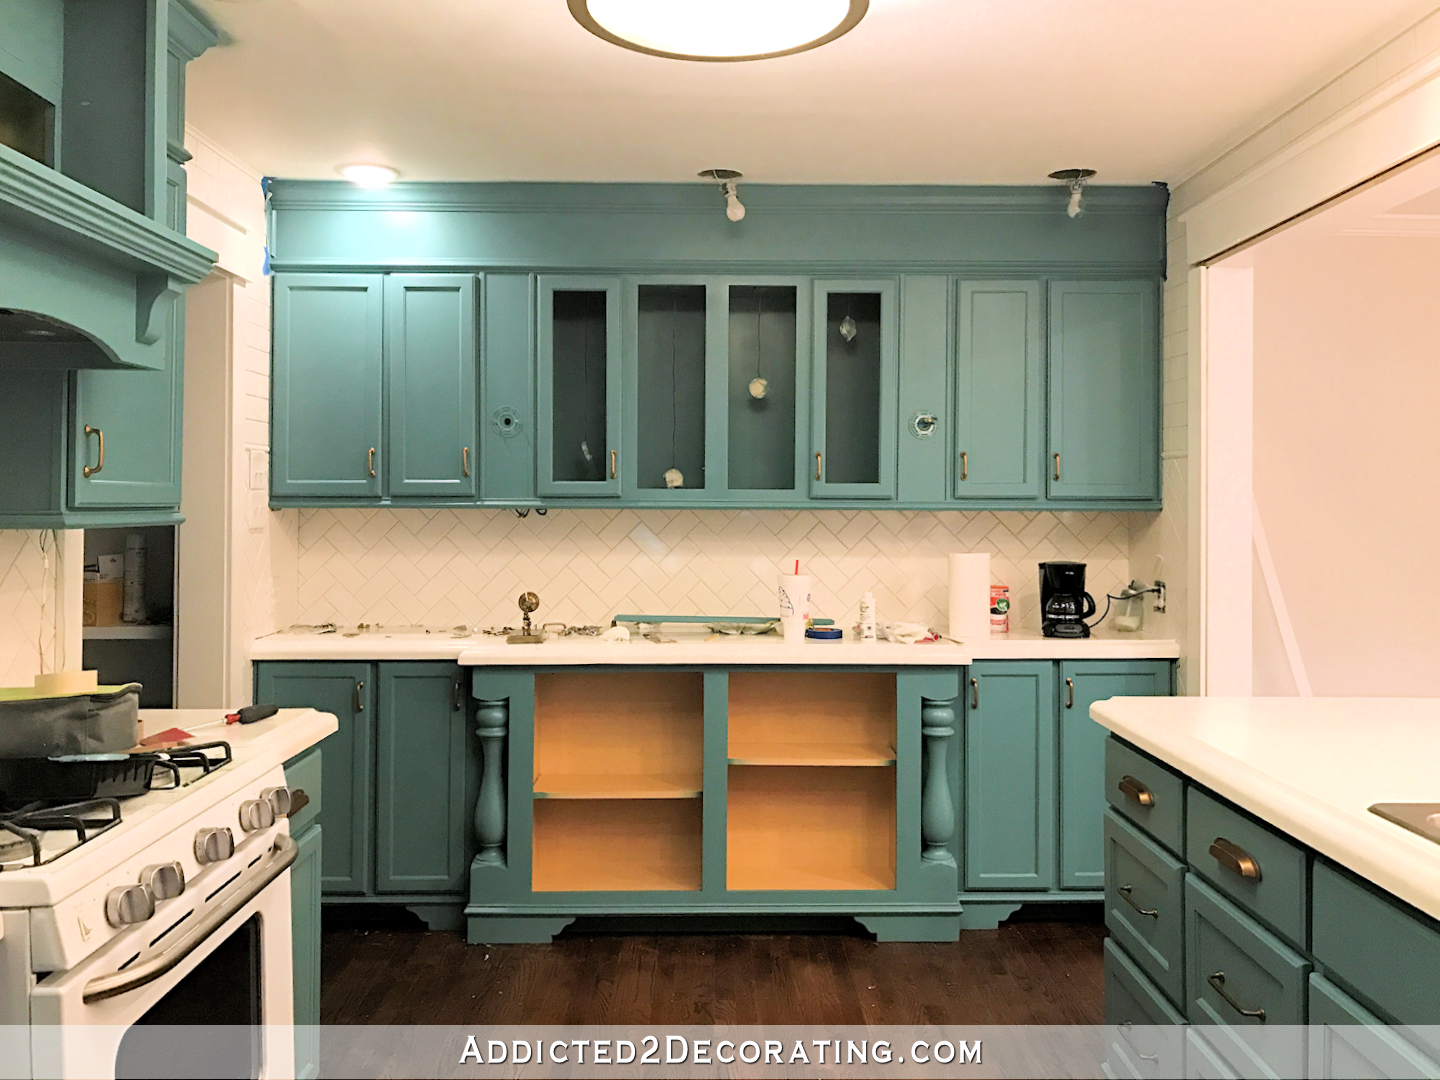 My Freshly Painted Teal Kitchen Cabinets Teal Kitchen Cabinets Unfinished Kitchen Cabinets Teal Kitchen